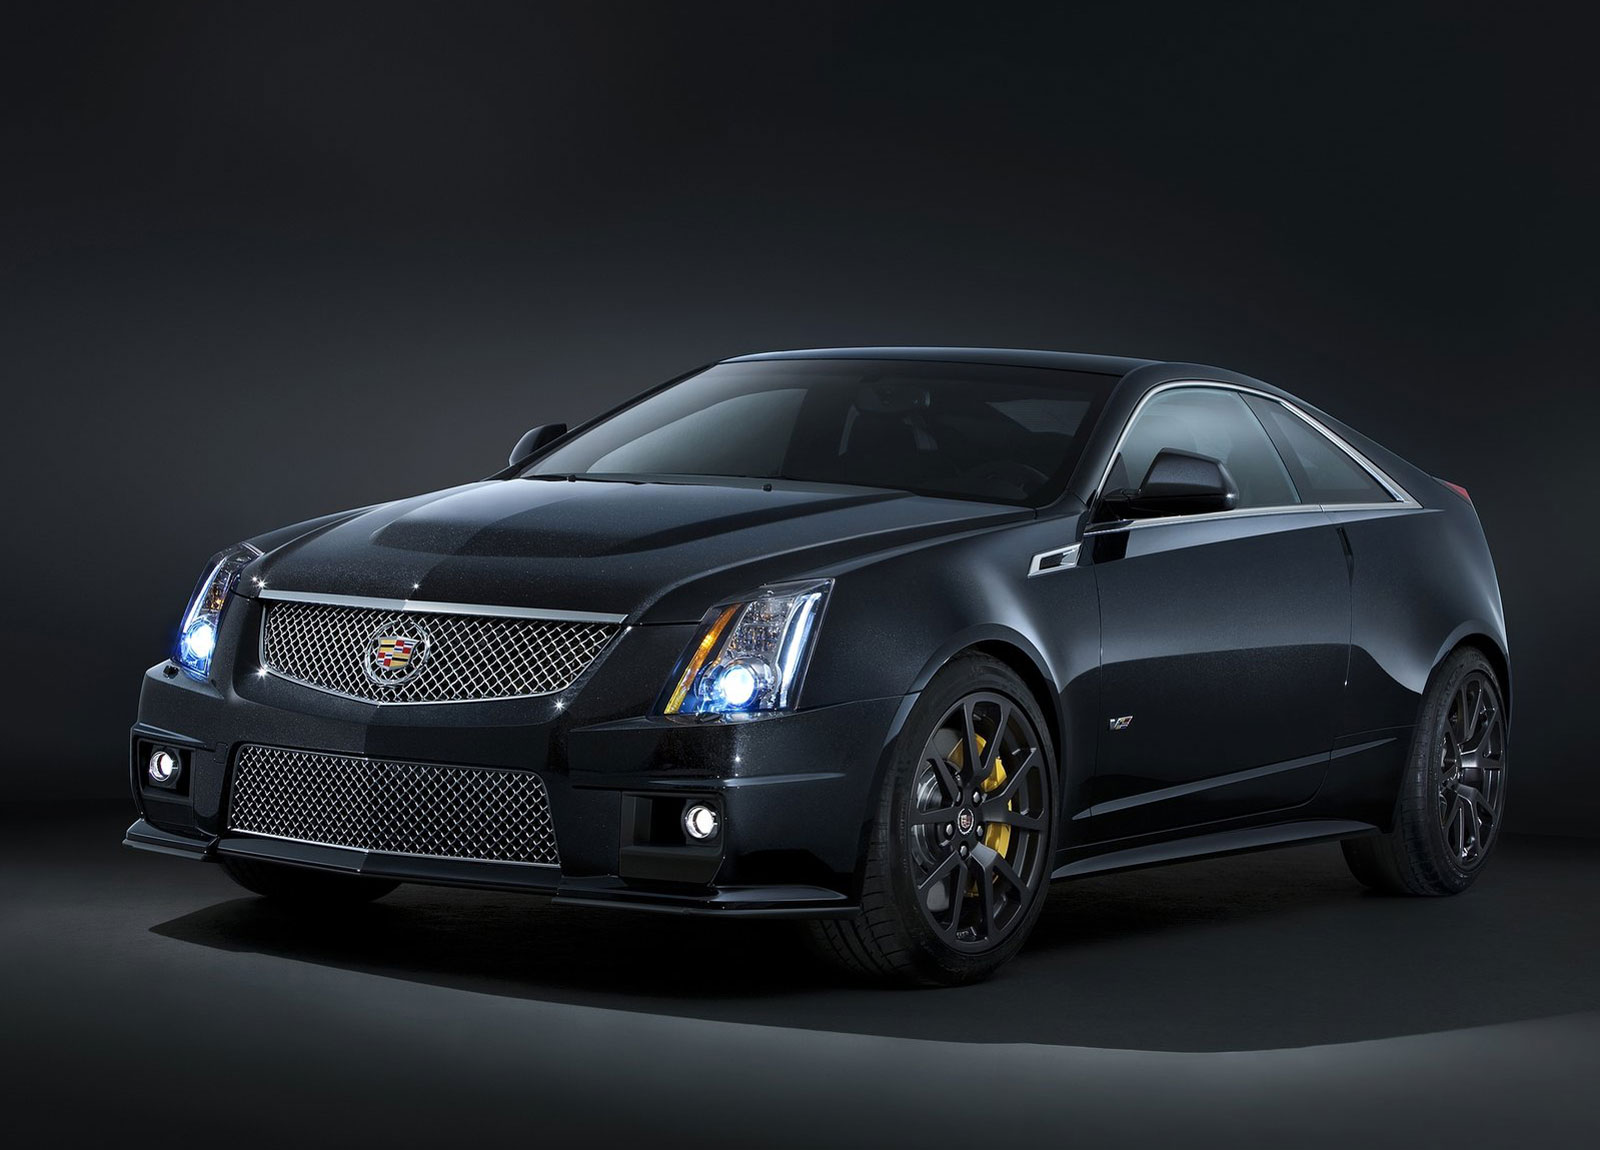 cadillac cts v black diamond edition adds a diamond like finish to cadillac v series extravaganzi. Black Bedroom Furniture Sets. Home Design Ideas